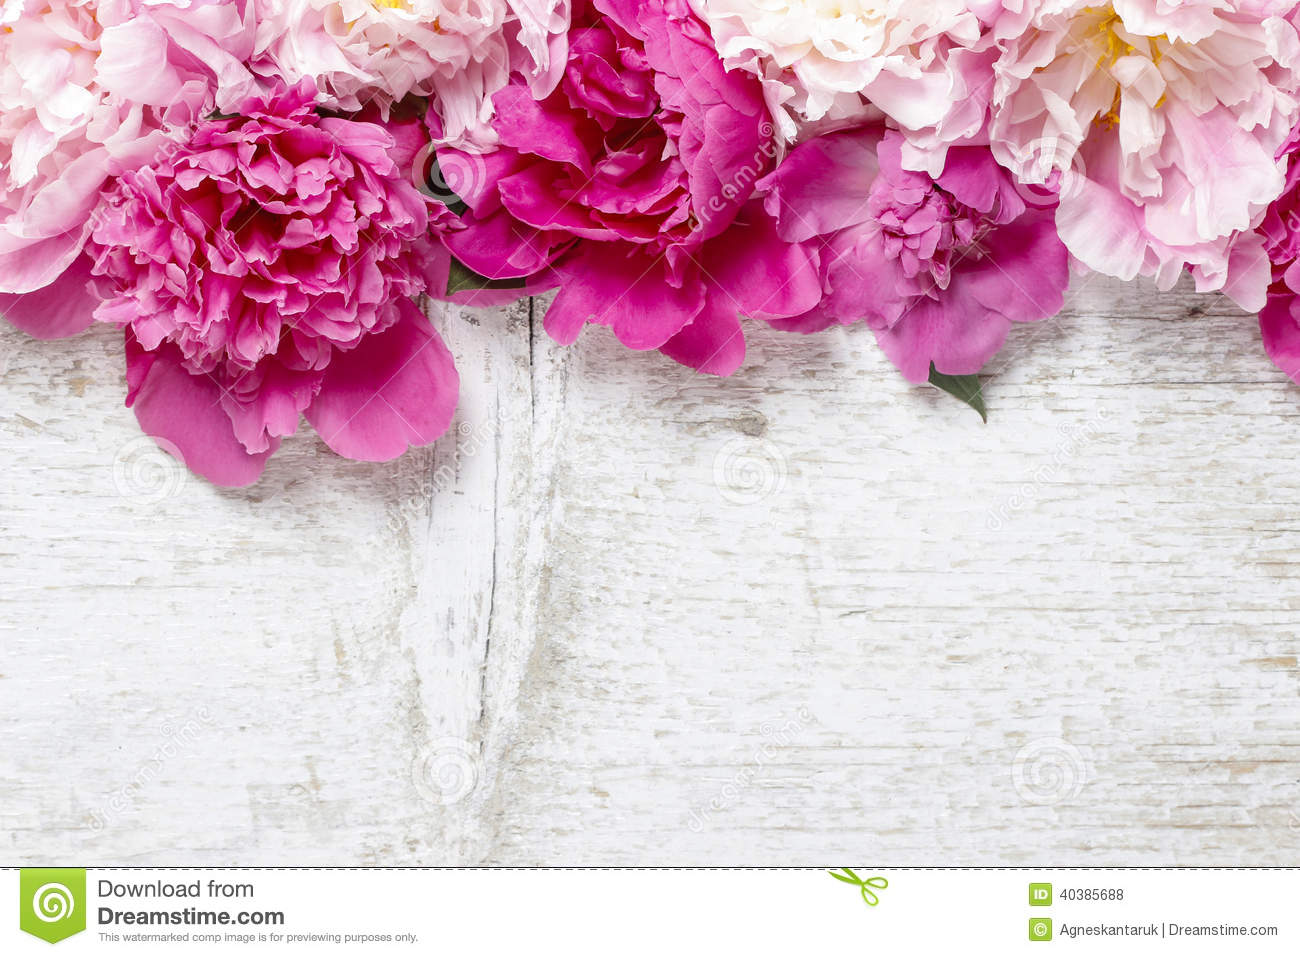 Peony Love Quote Wallpaper Stunning Pink Peonies On White Rustic Wooden Background